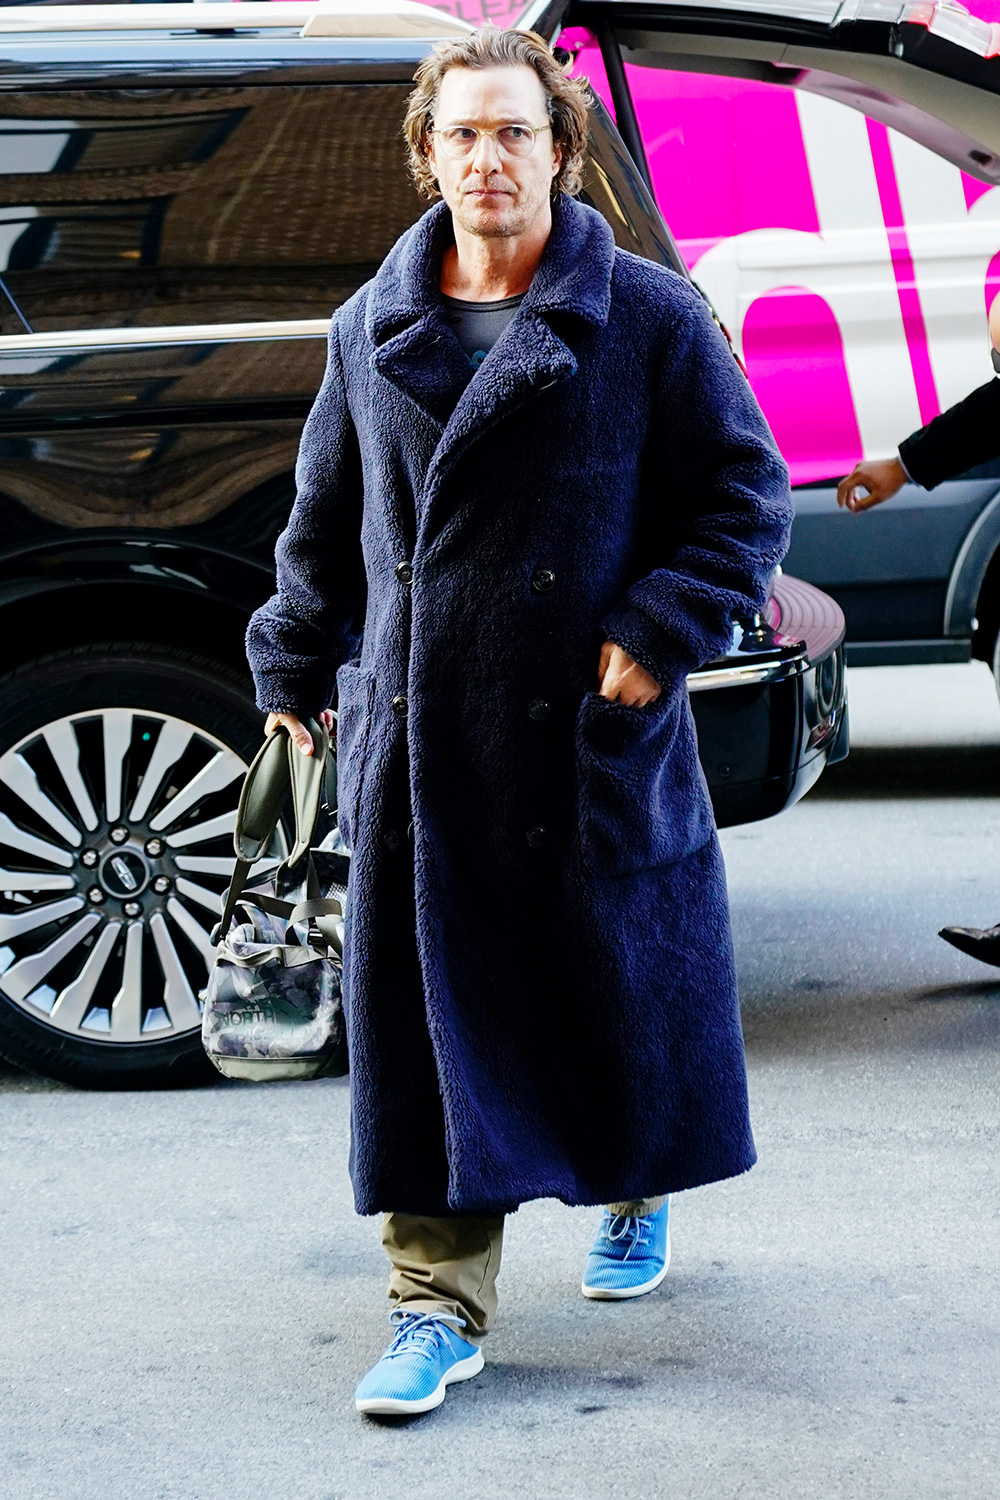 Matthew McConaughey wears an unique bathrob-looking coat when out and about in New York